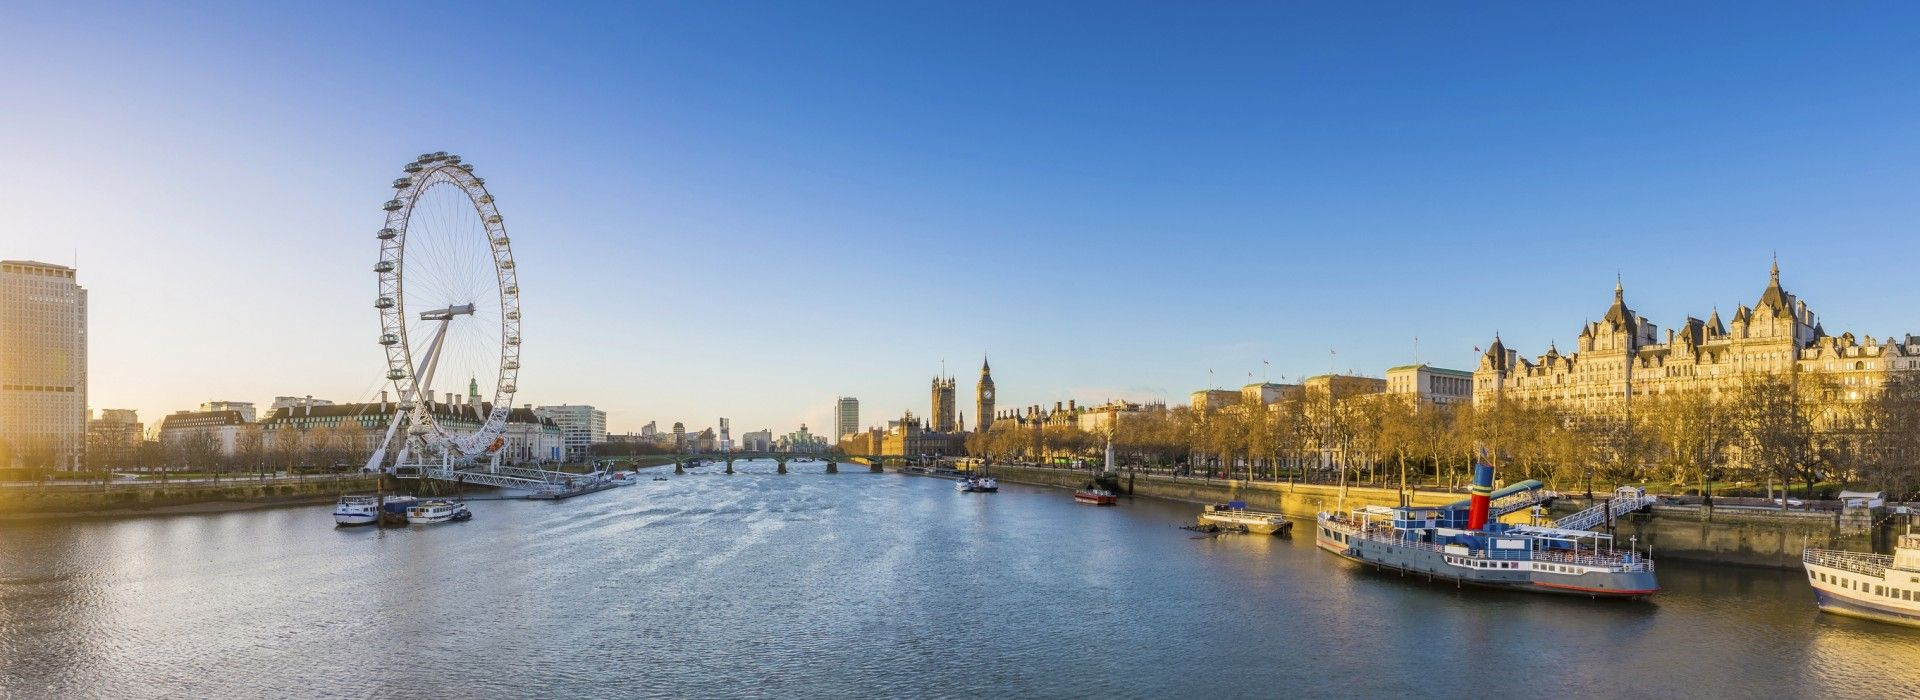 Sightseeing, attractions, culture and history Tours in London